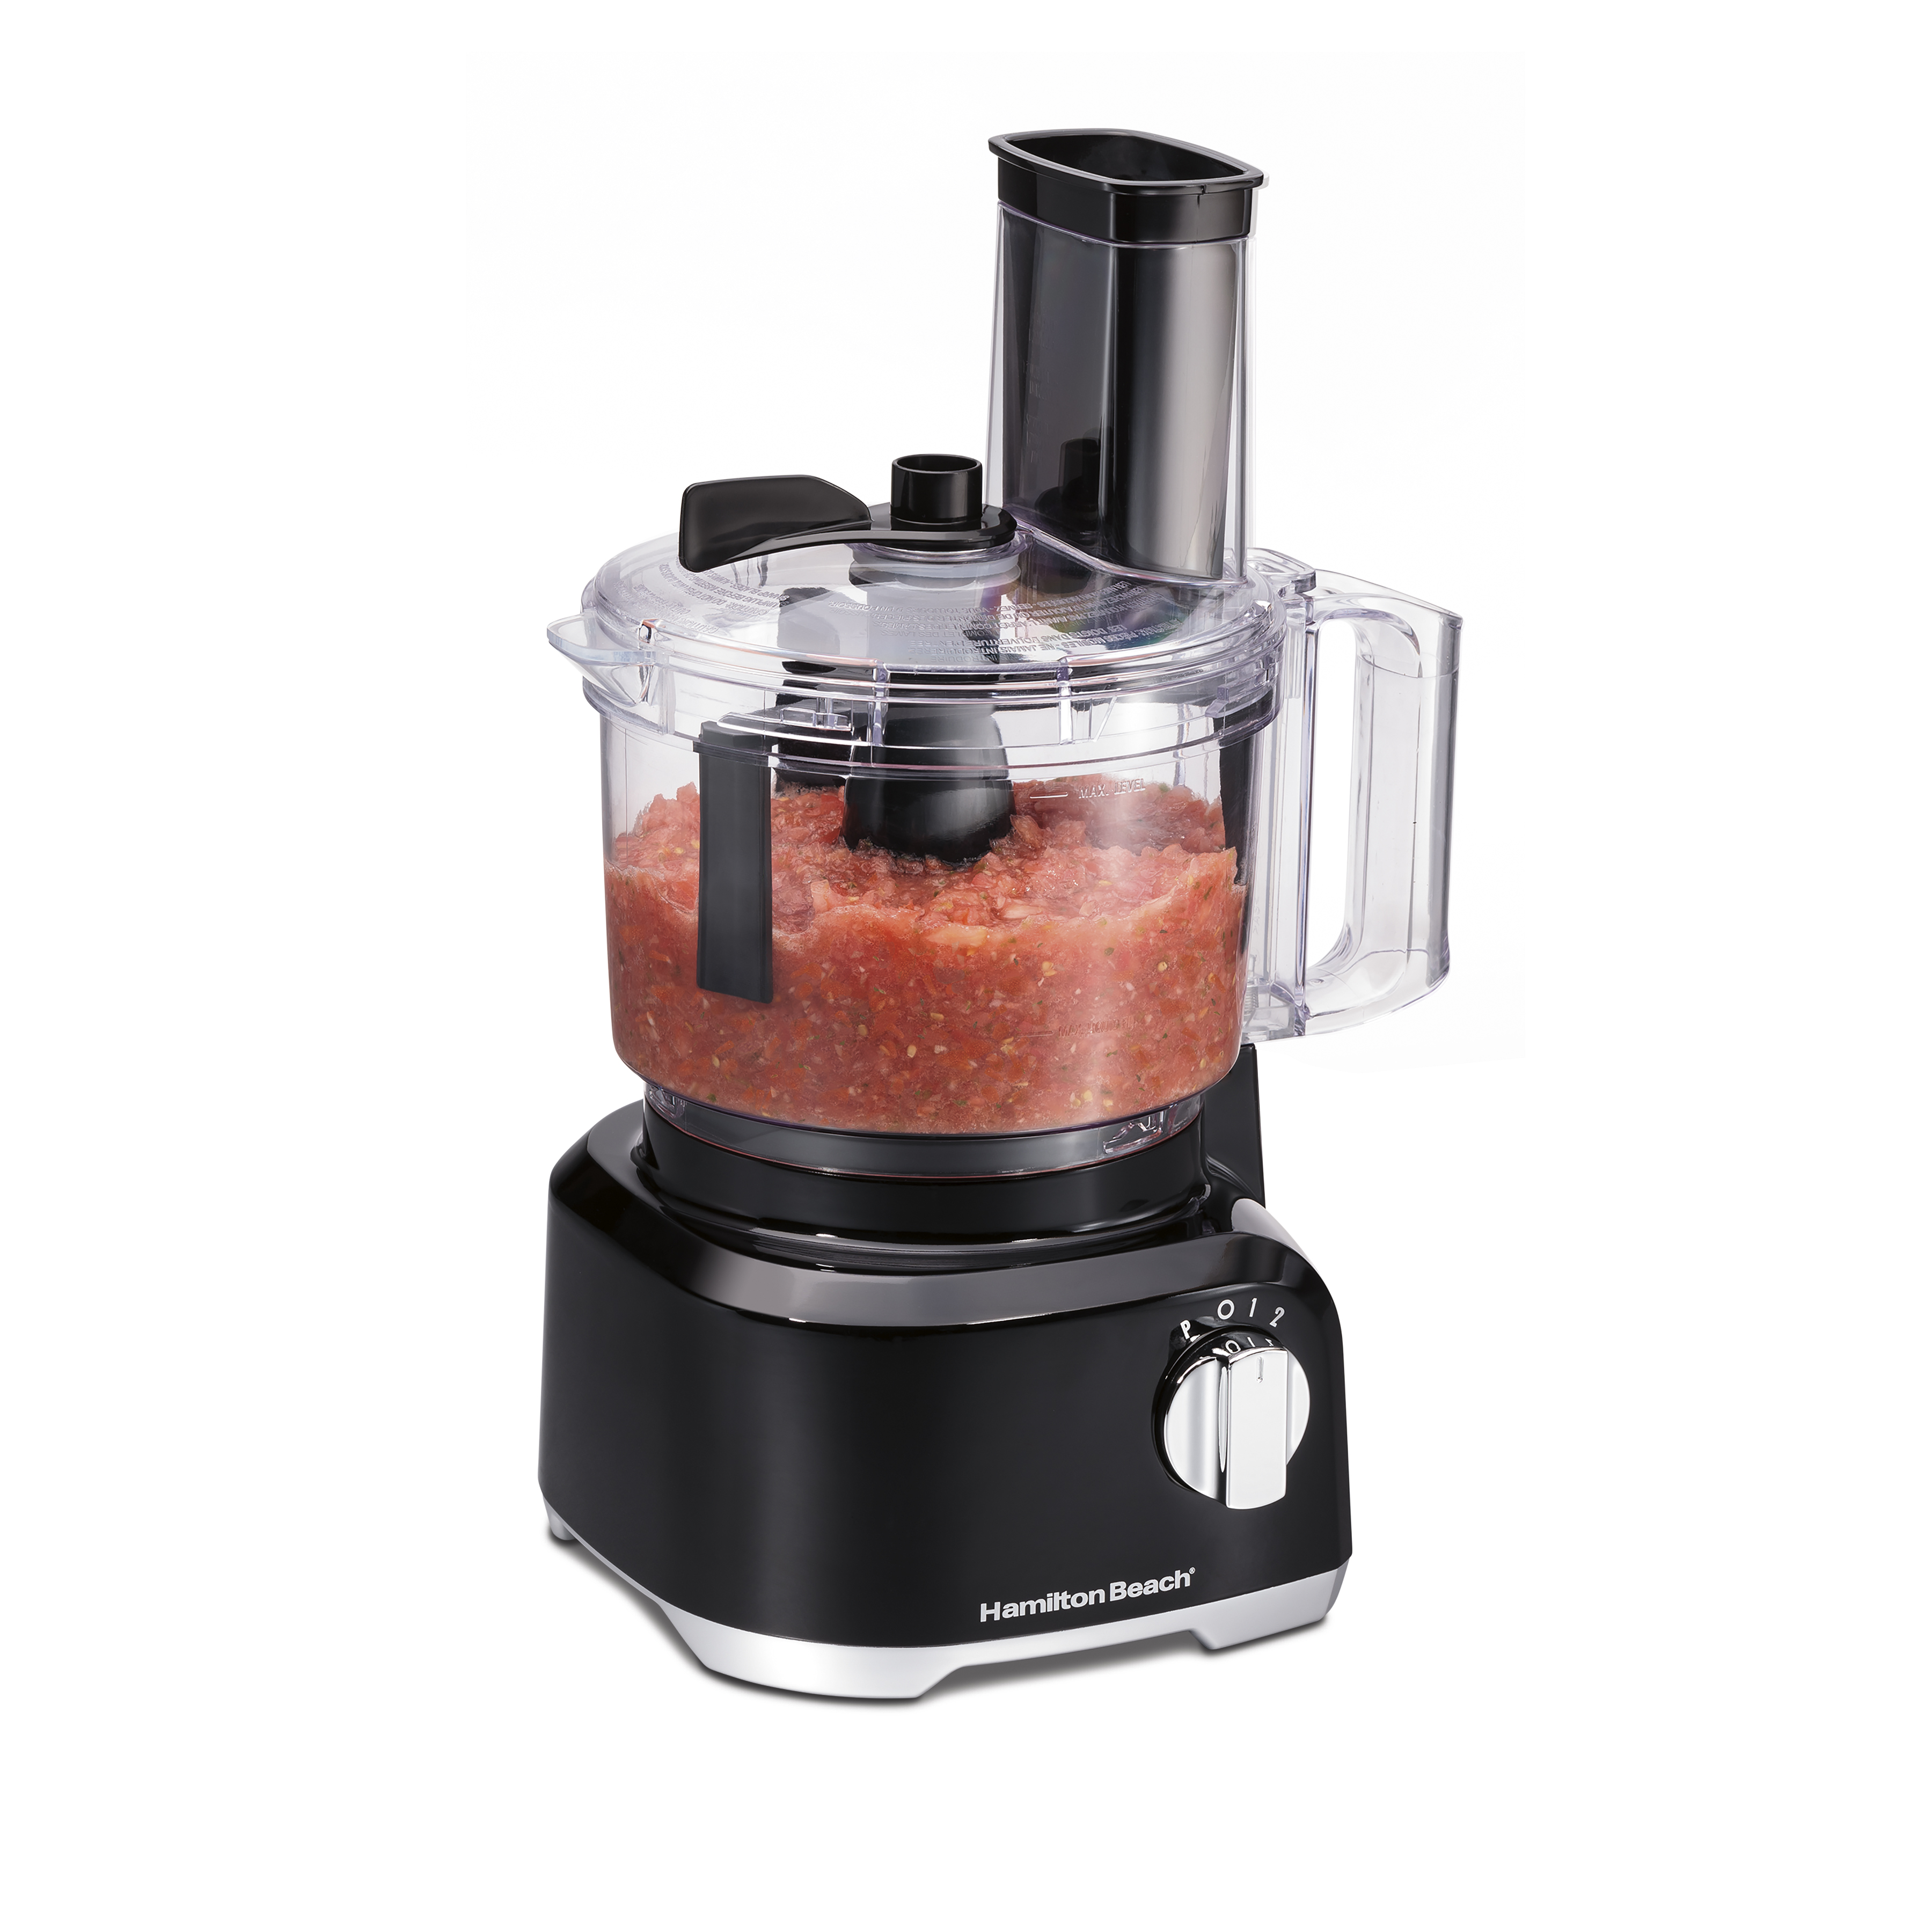 Hamilton Beach® Bowl Scraper Food Processor | Model# 70743